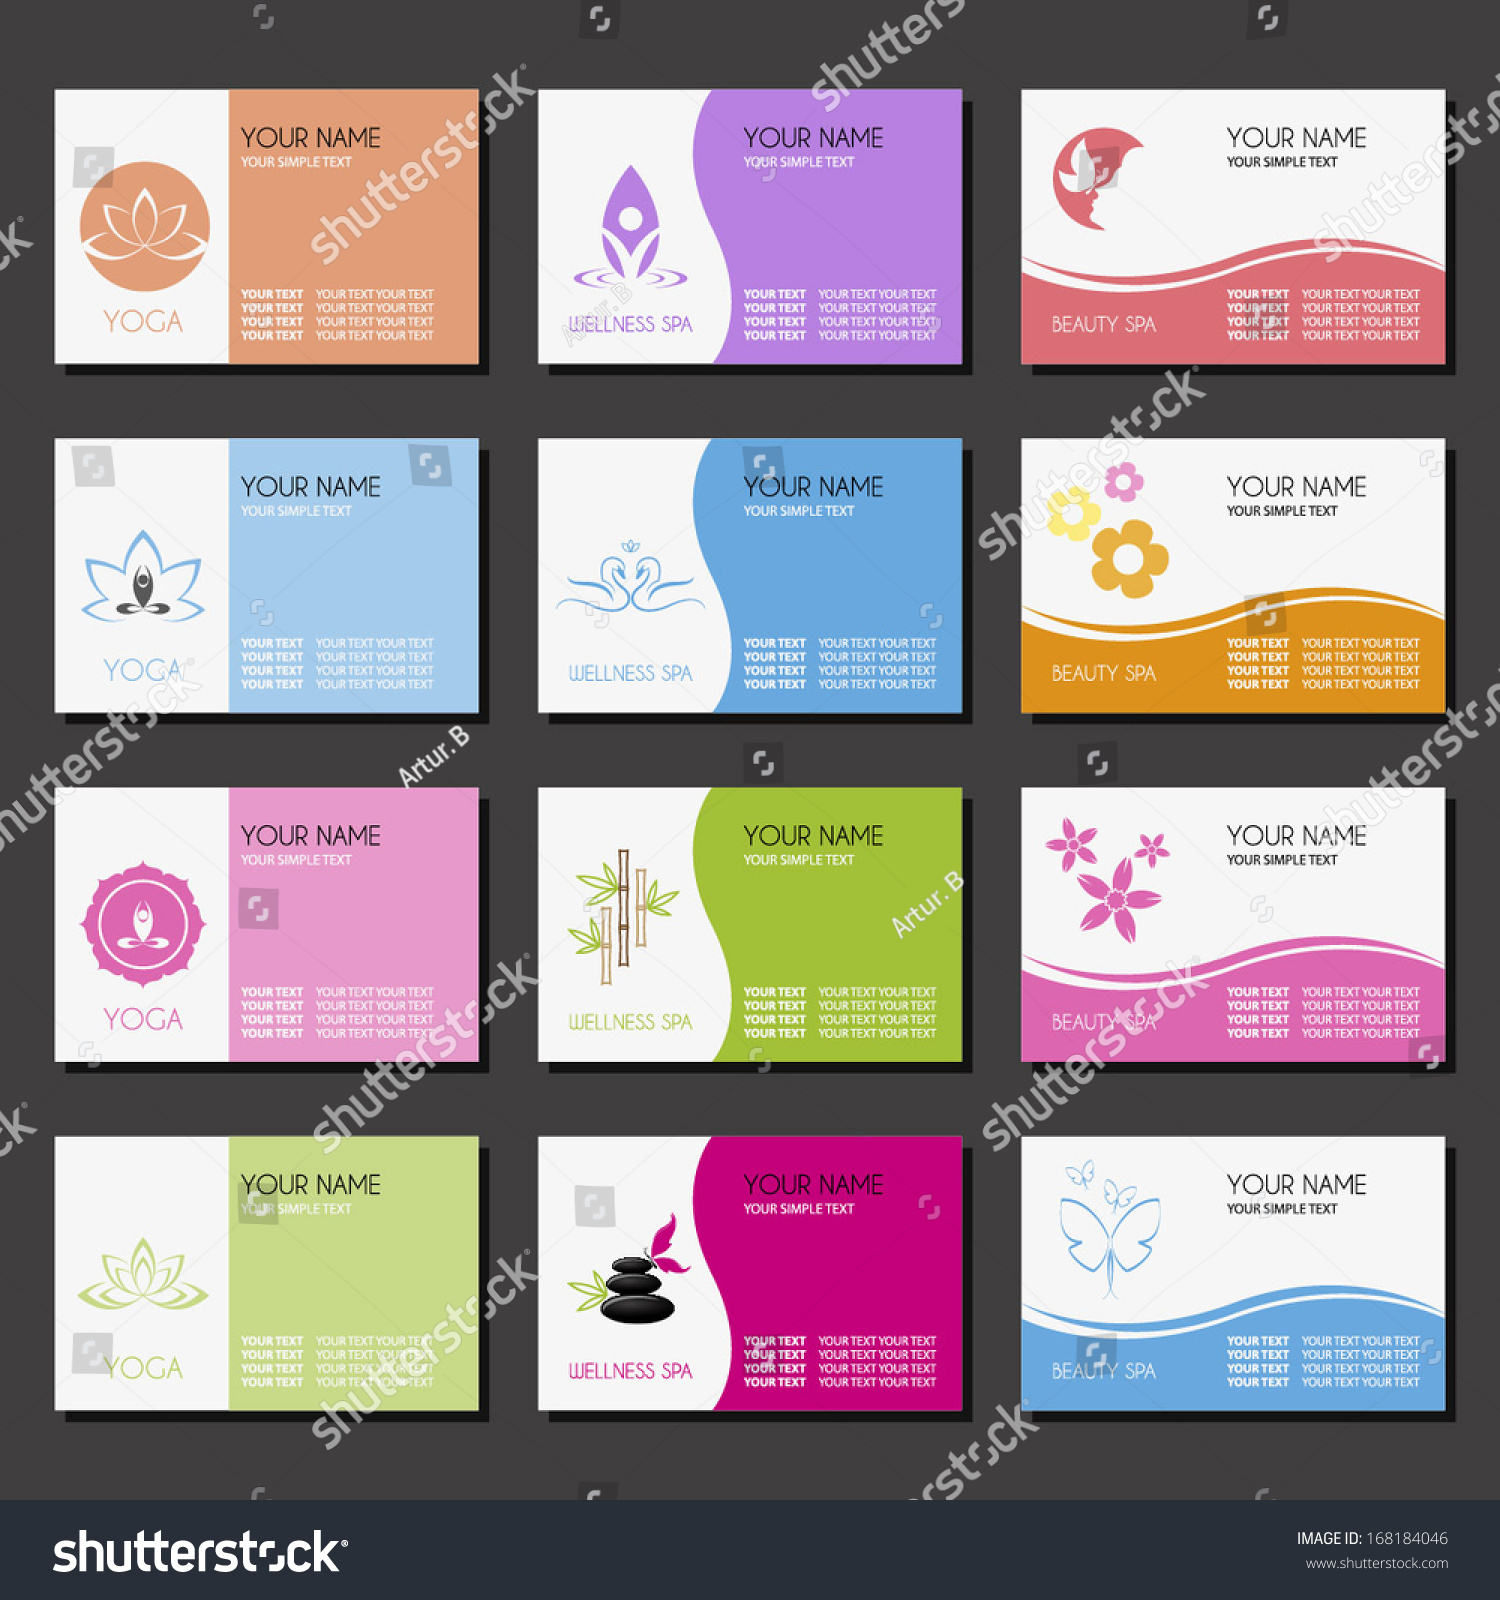 yoga business cards